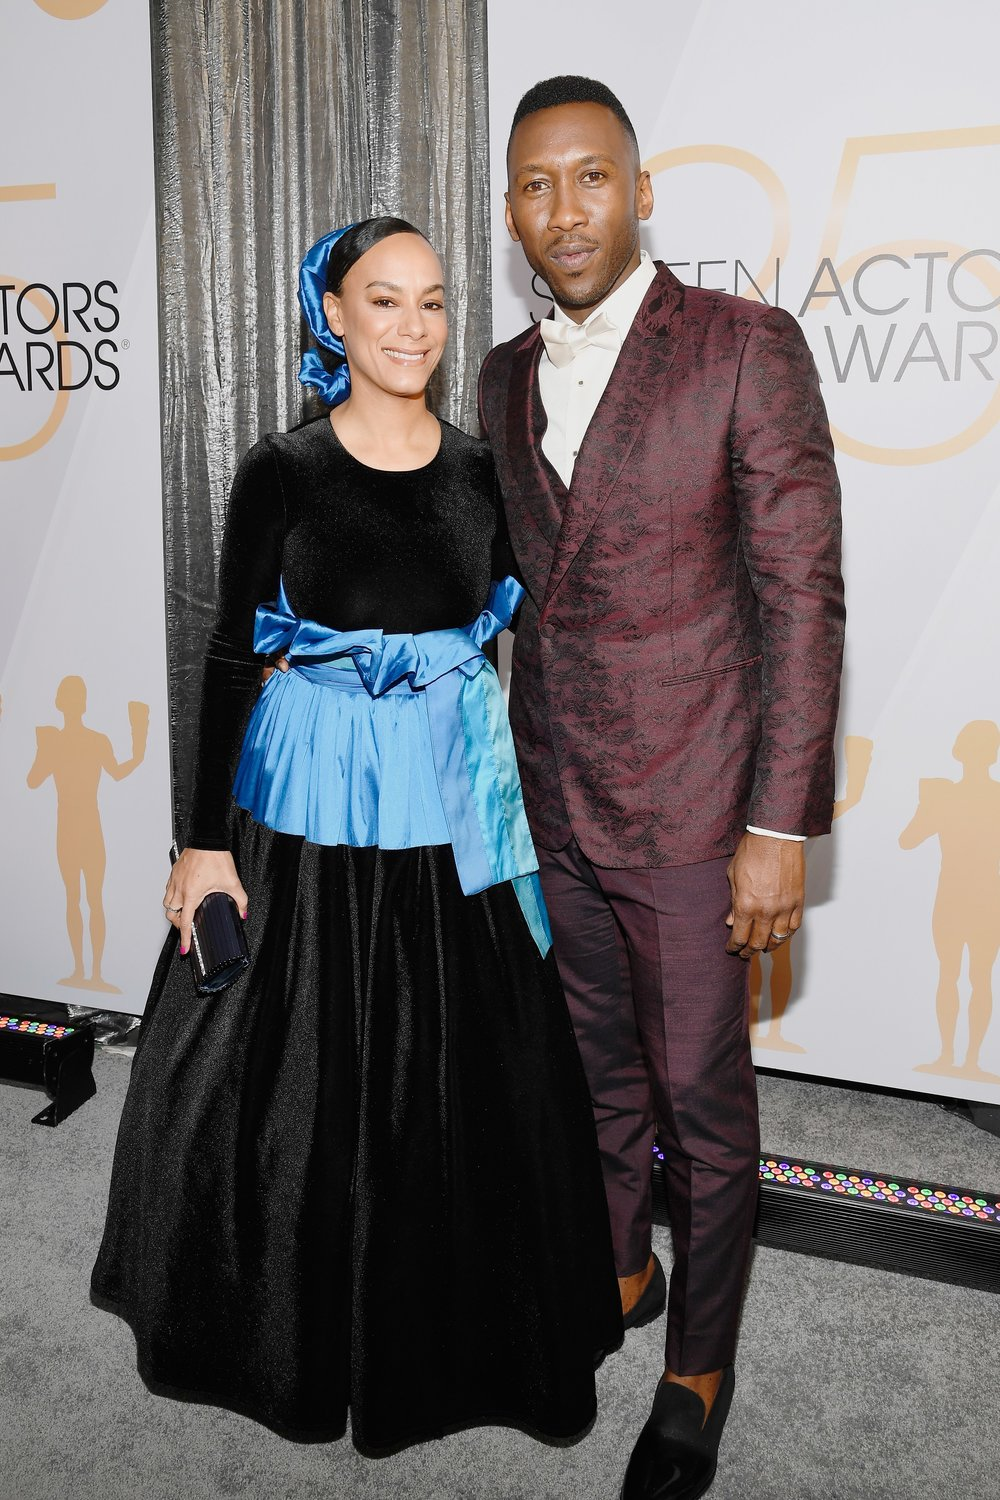 SAG AWARDS 2019 RED CARPET MAHERSHALA ALI AND WIFE.jpg